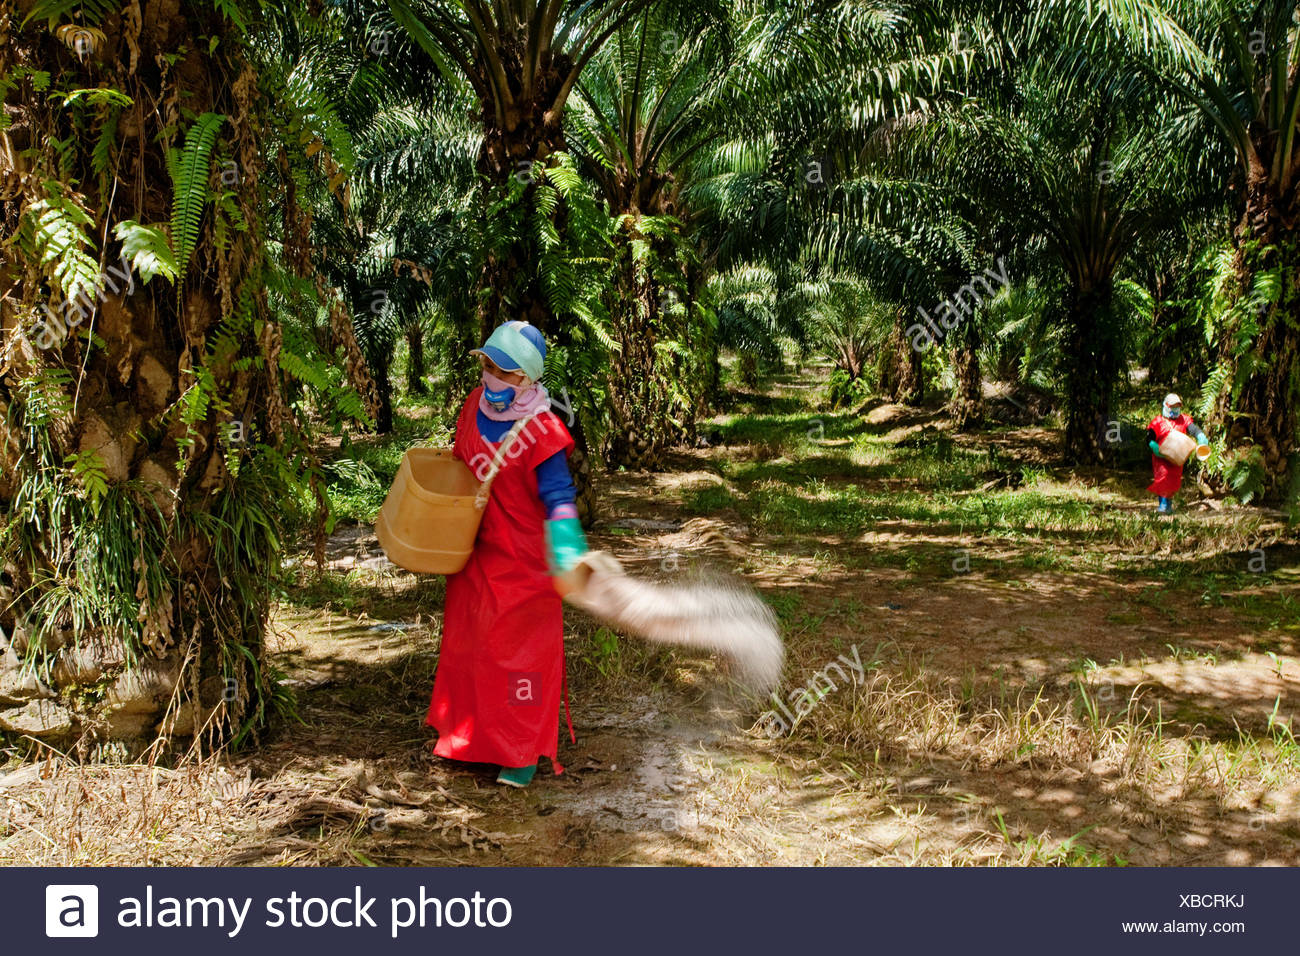 workers scattering fertilizer pellets oil palm plantation in malaysia oil palms are grown commercially produce palm oil which XBCRKJ - What kind of fertilizer you should choose for your palm tree?